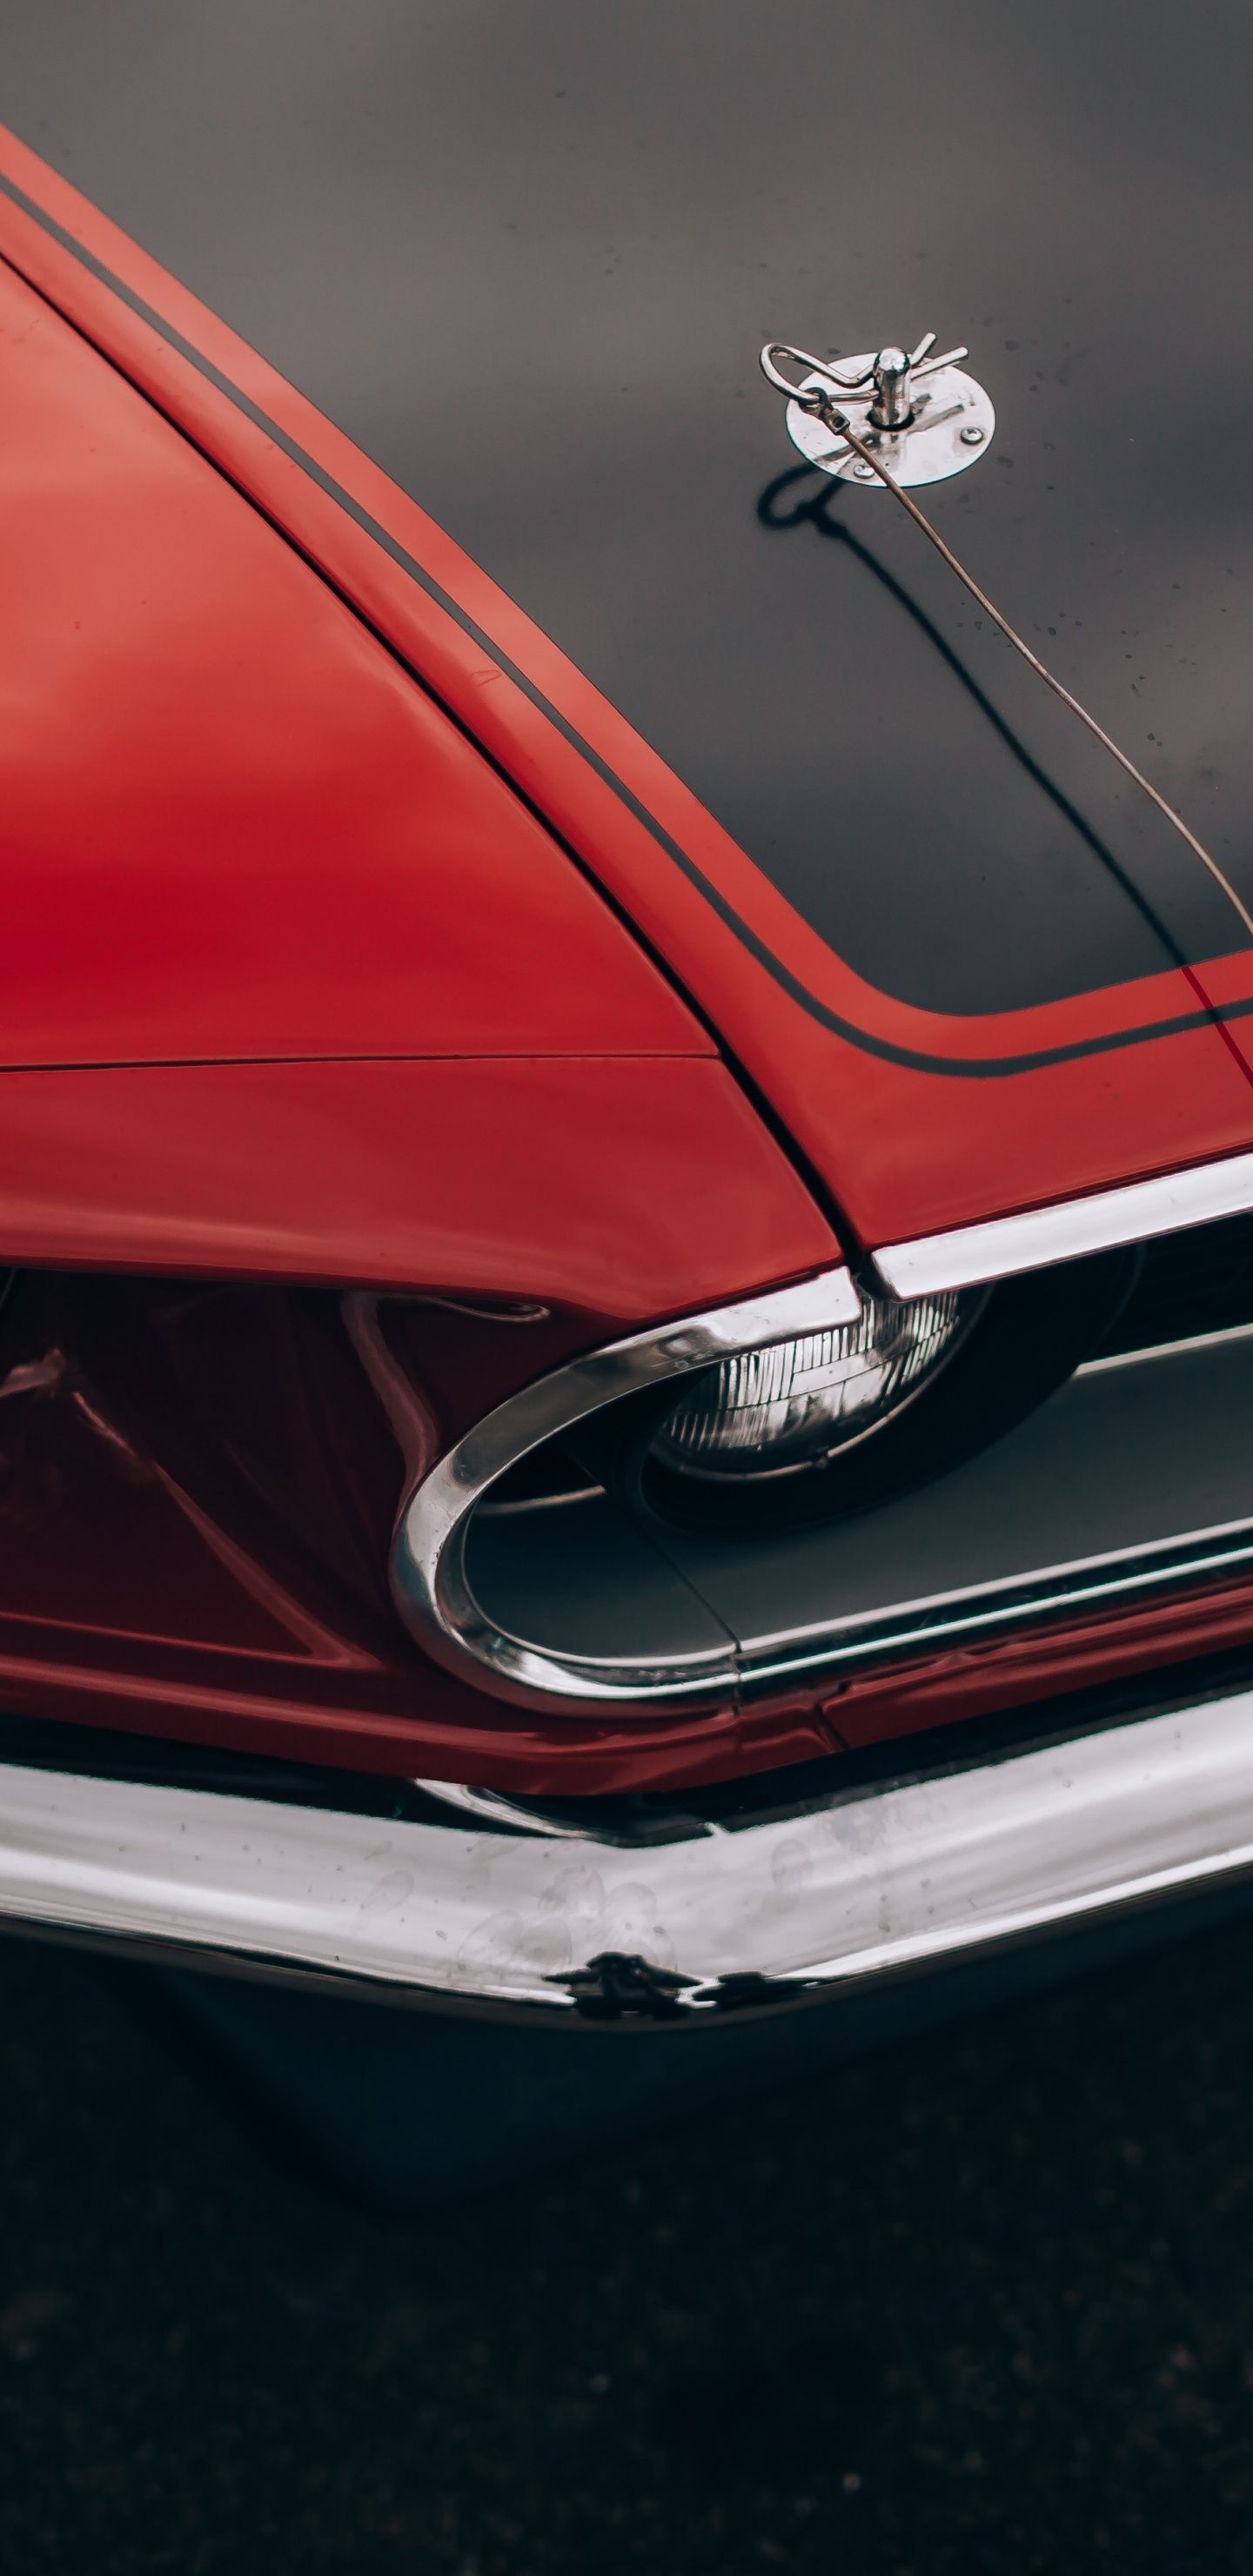 1440x2960 Headlight Car Red And Classic Wallpaper Classic Wallpaper Car Iphone Wallpaper Car